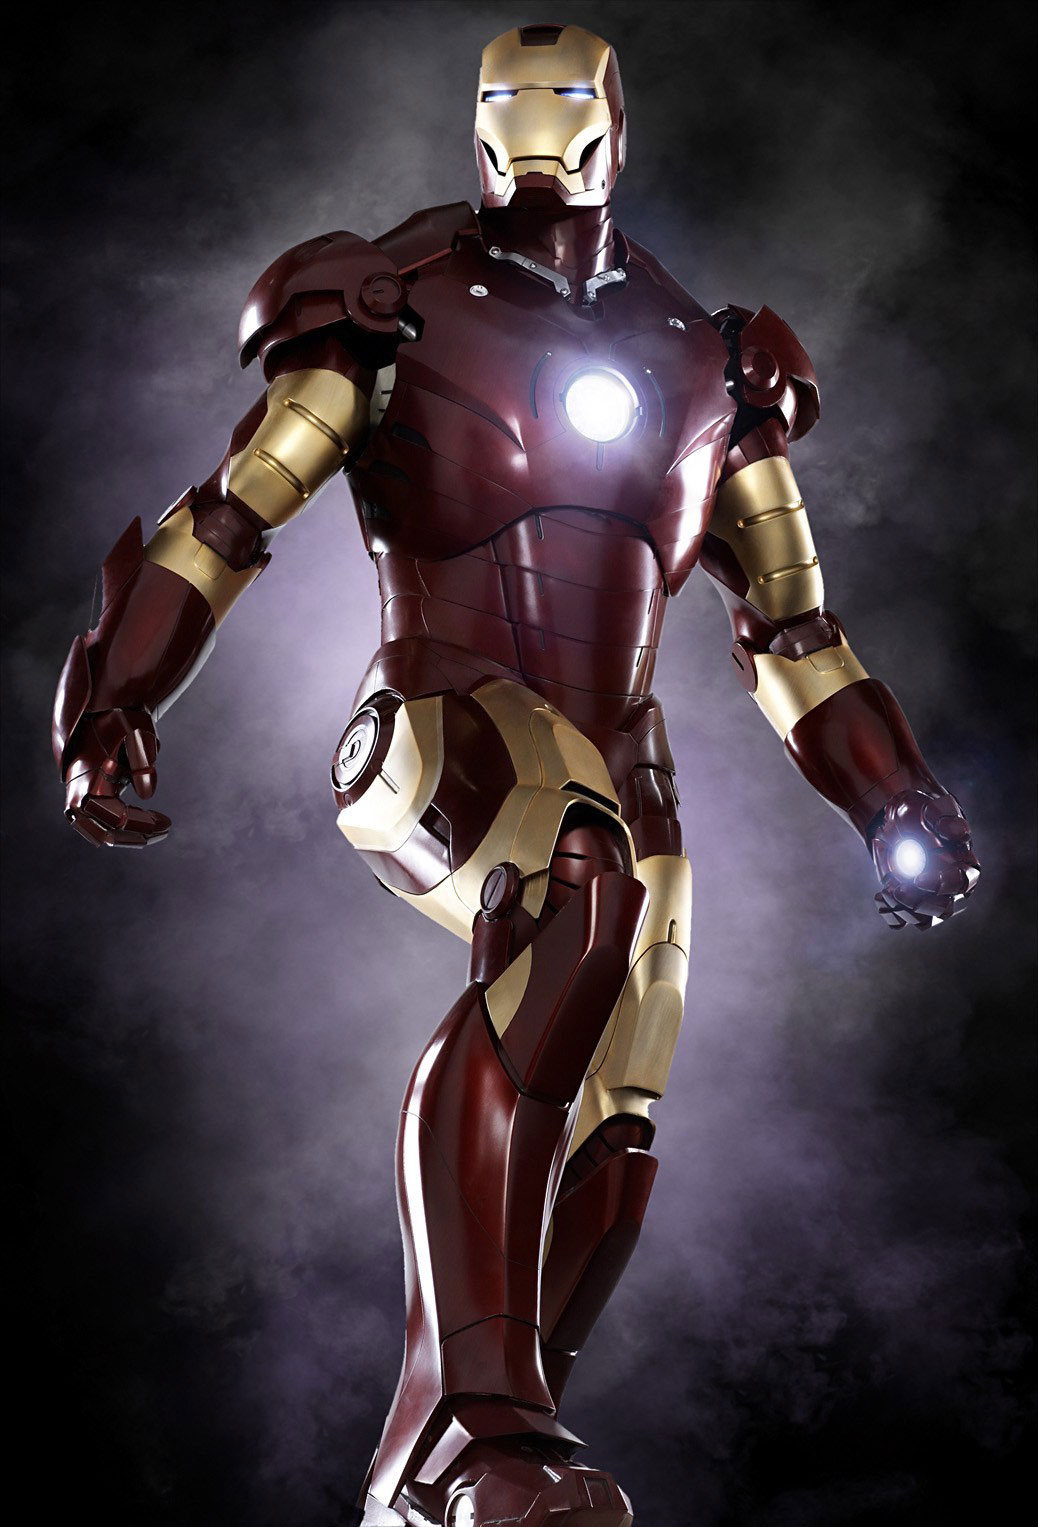 https://i2.wp.com/www.scifimoviepage.com/upcoming/photos/ironman1.jpg